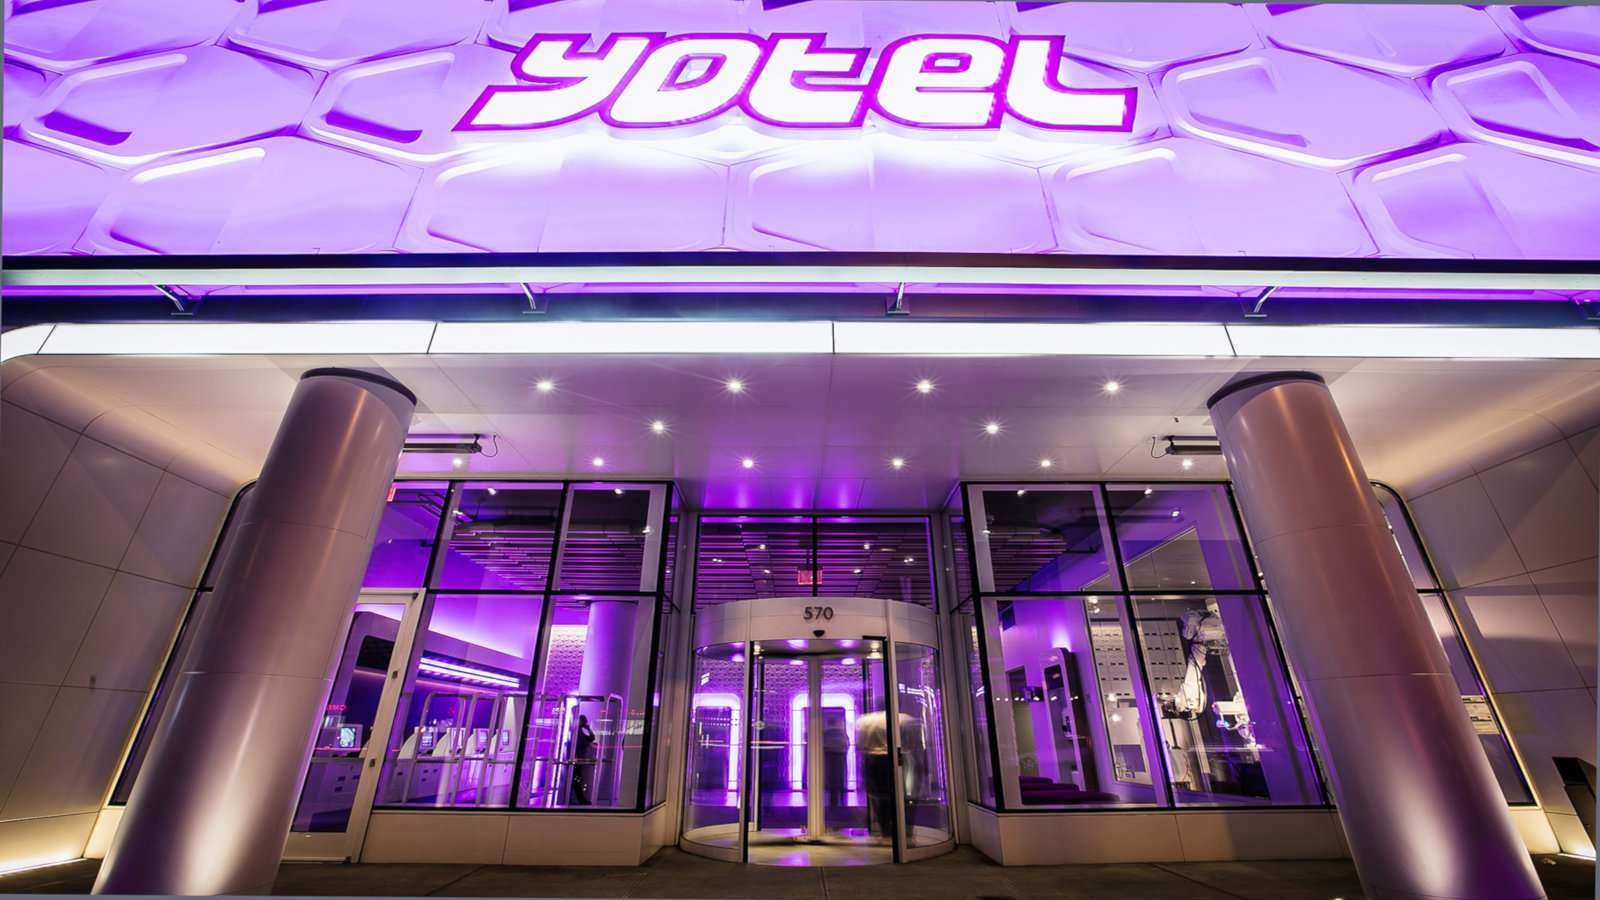 Gay travellers to New York will love the purple everywhere at New York's incredibly futuristic Yotel.